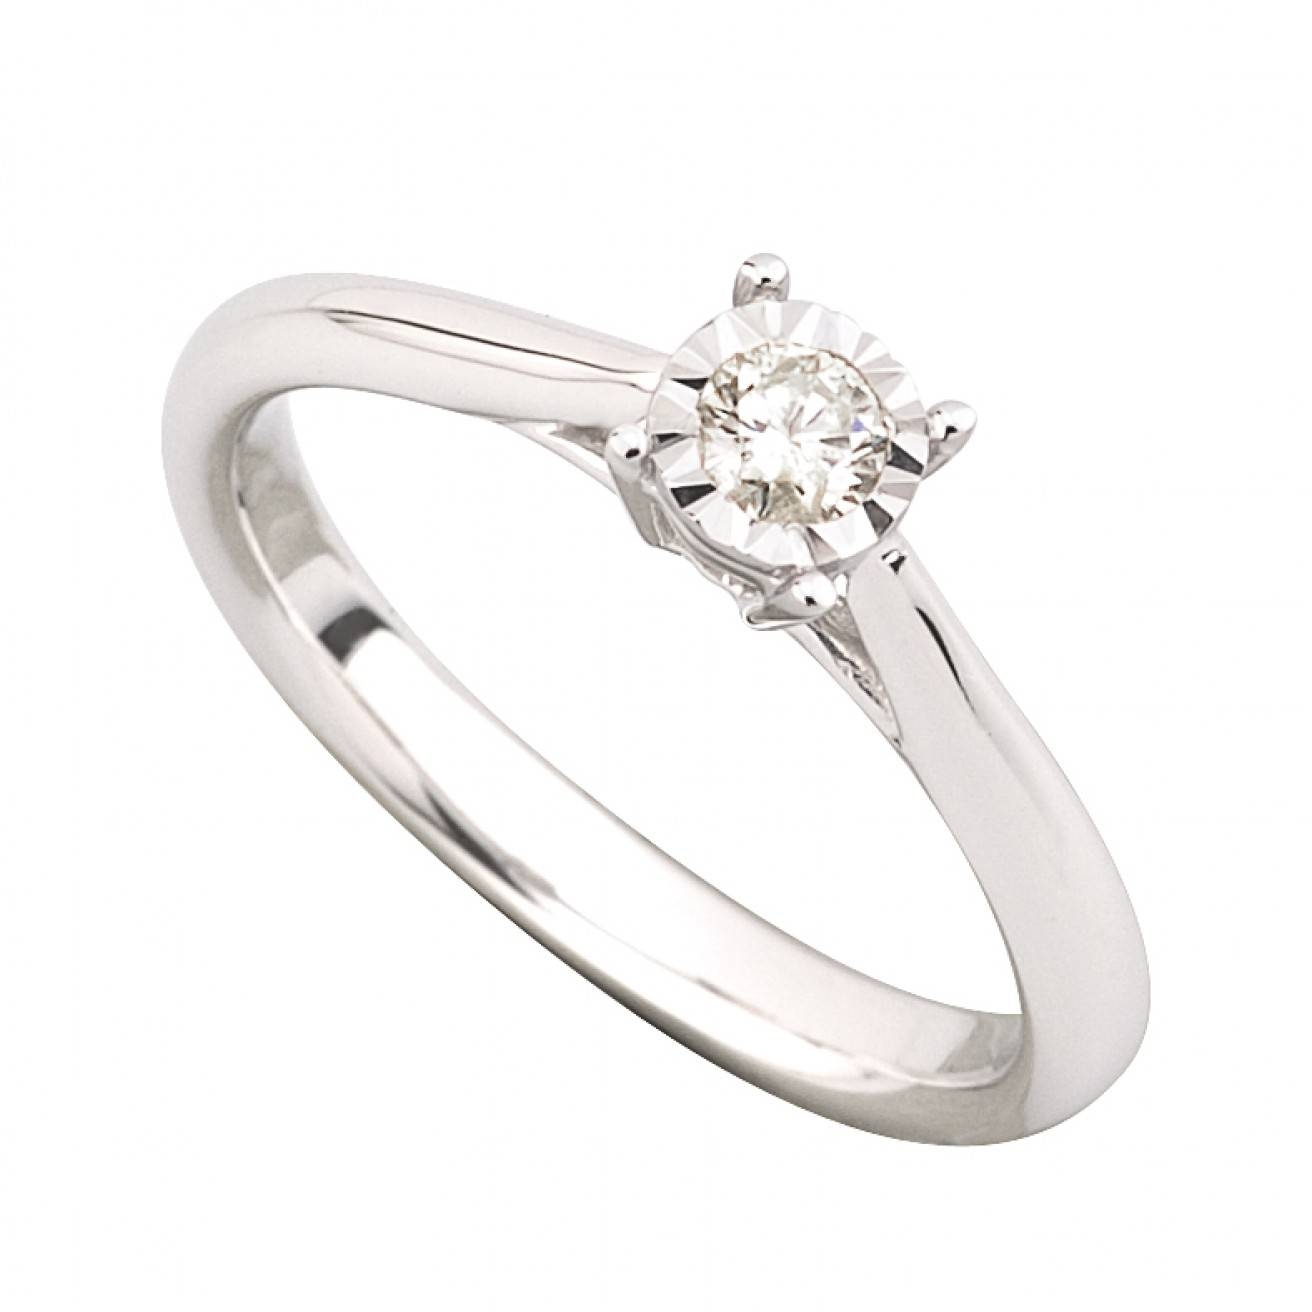 Buy Diamond Engagement Rings Online – Fraser Hart In White Gold And Diamond Wedding Rings (View 8 of 15)